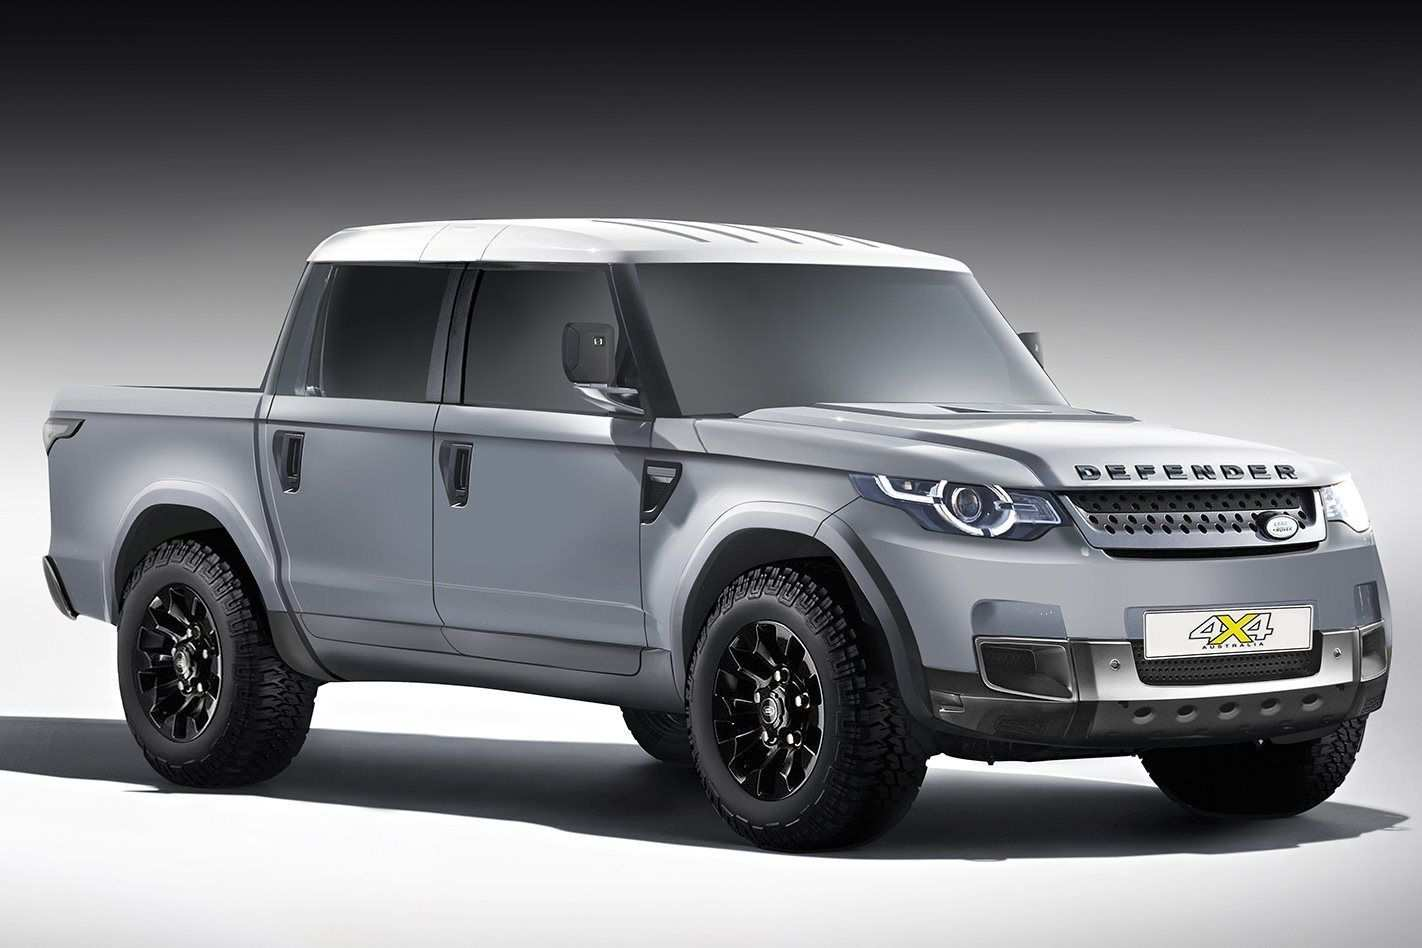 76 New Jaguar Land Rover Defender 2020 Redesign And Concept